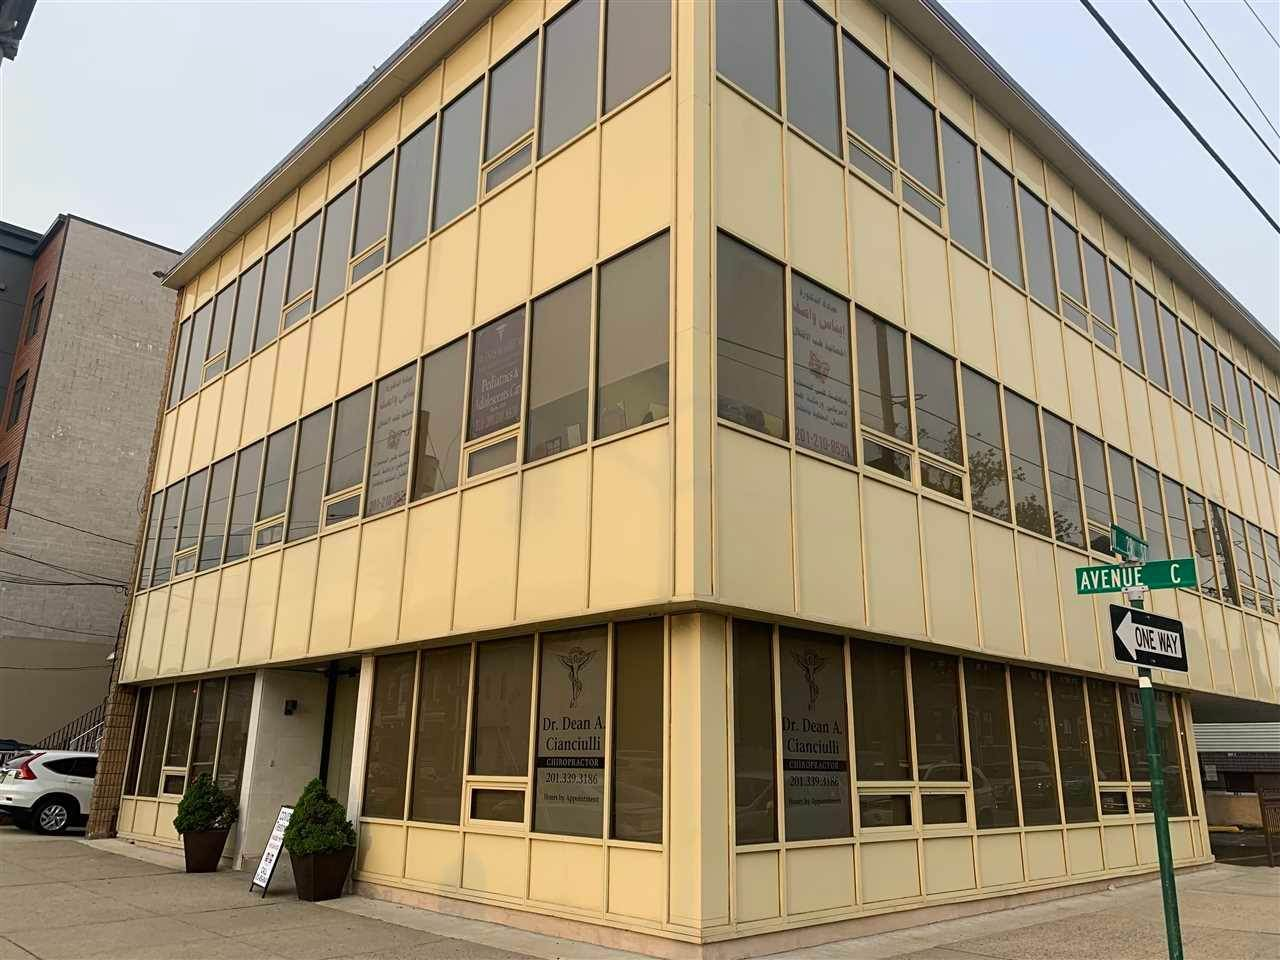 Commercial / Office for Rent at 654-656 AVENUE C Bayonne, New Jersey,07002 United States